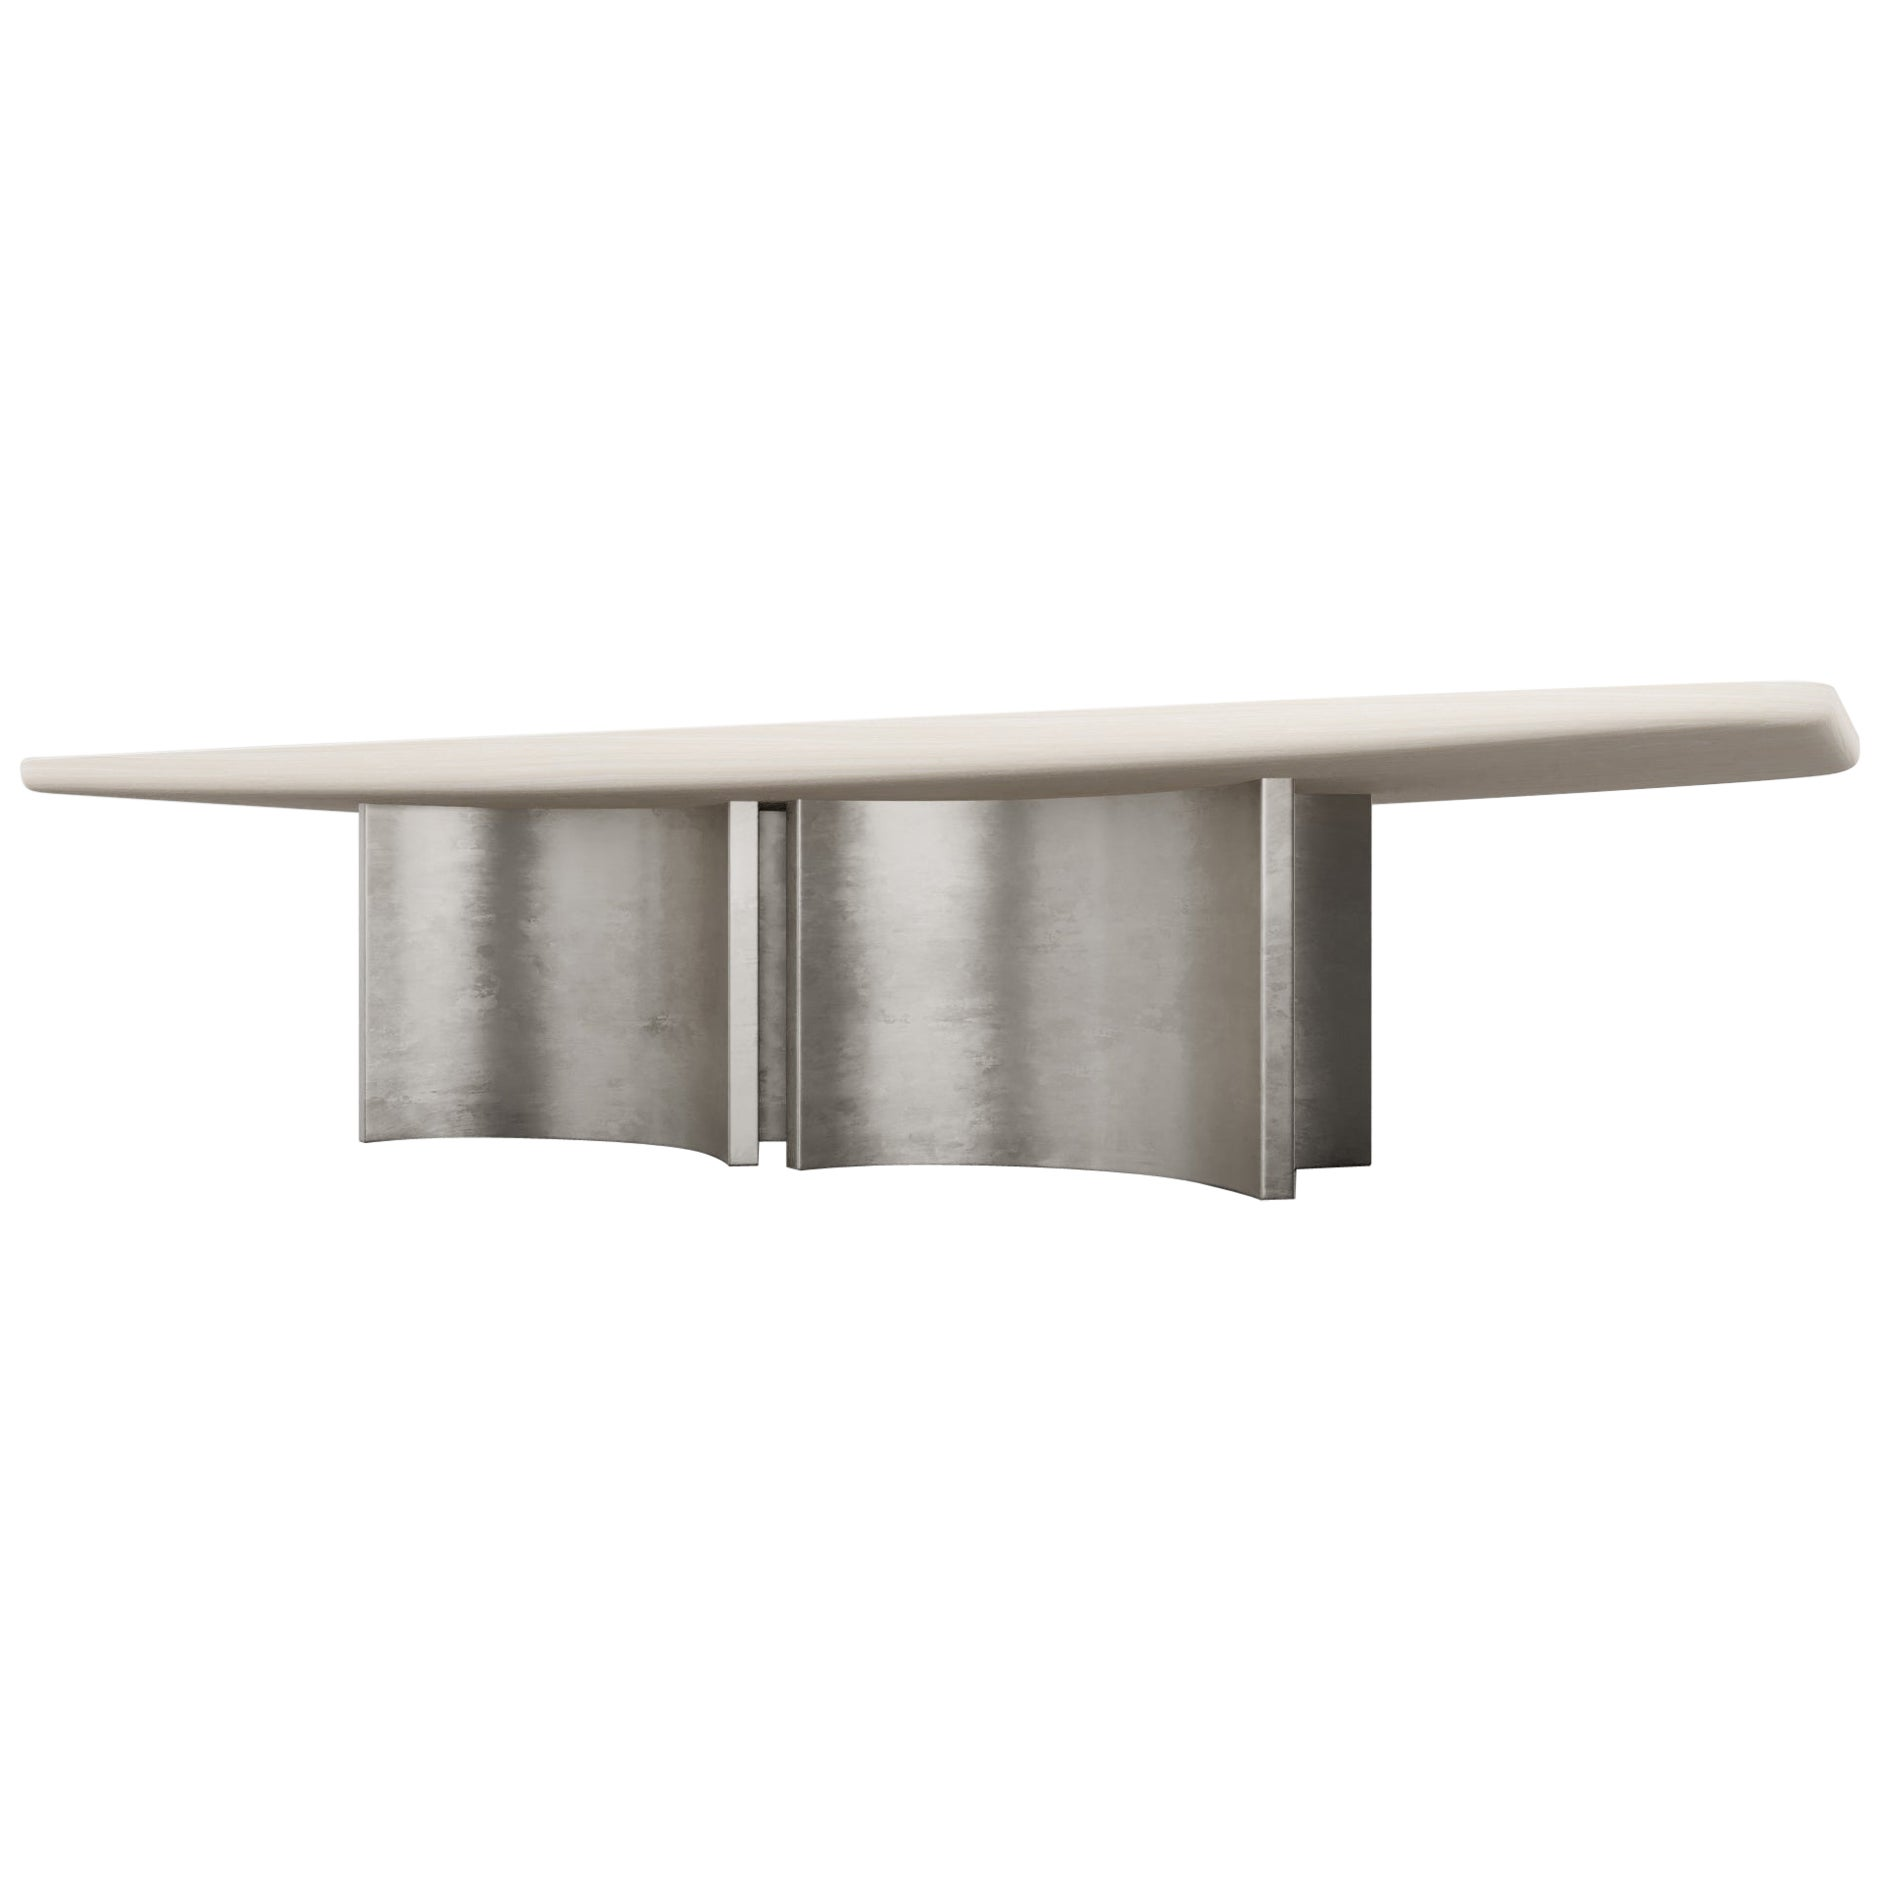 FLOAT DINING TABLE - Modern Wooden Dinning Table with Silver Bases